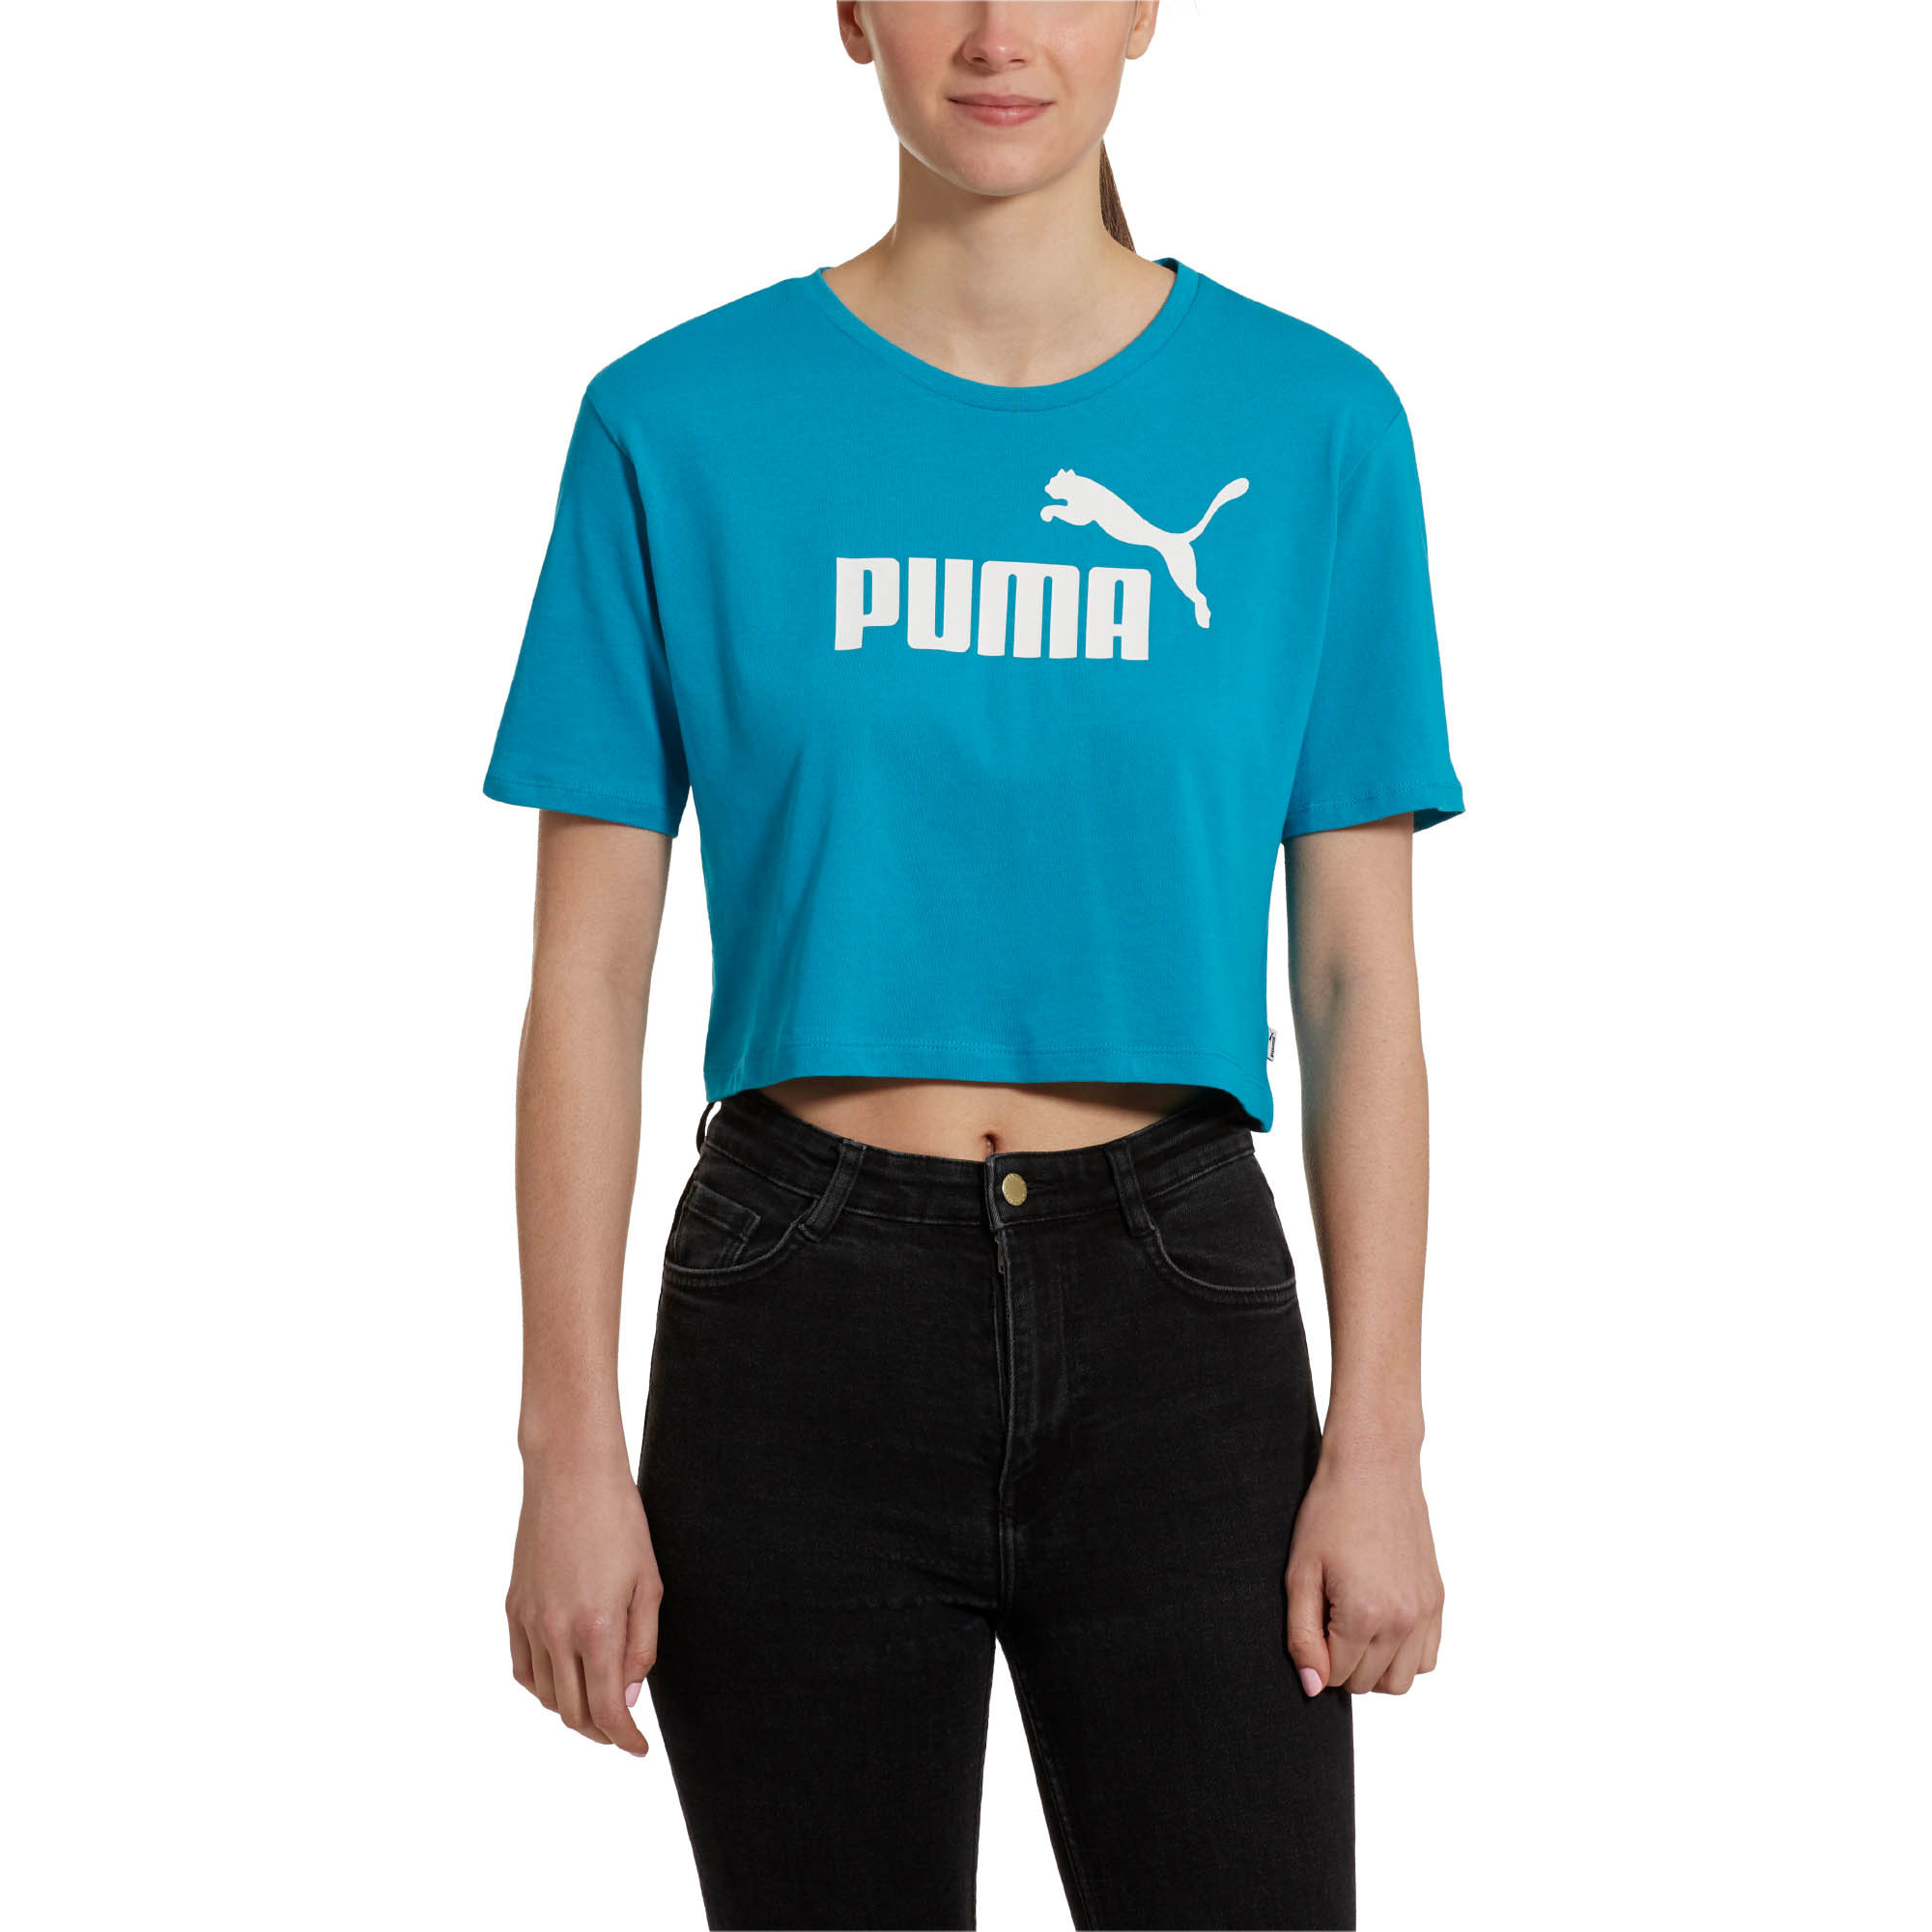 PUMA-Women-039-s-Cropped-Logo-Tee-Women-Crop-Top-Basics thumbnail 3